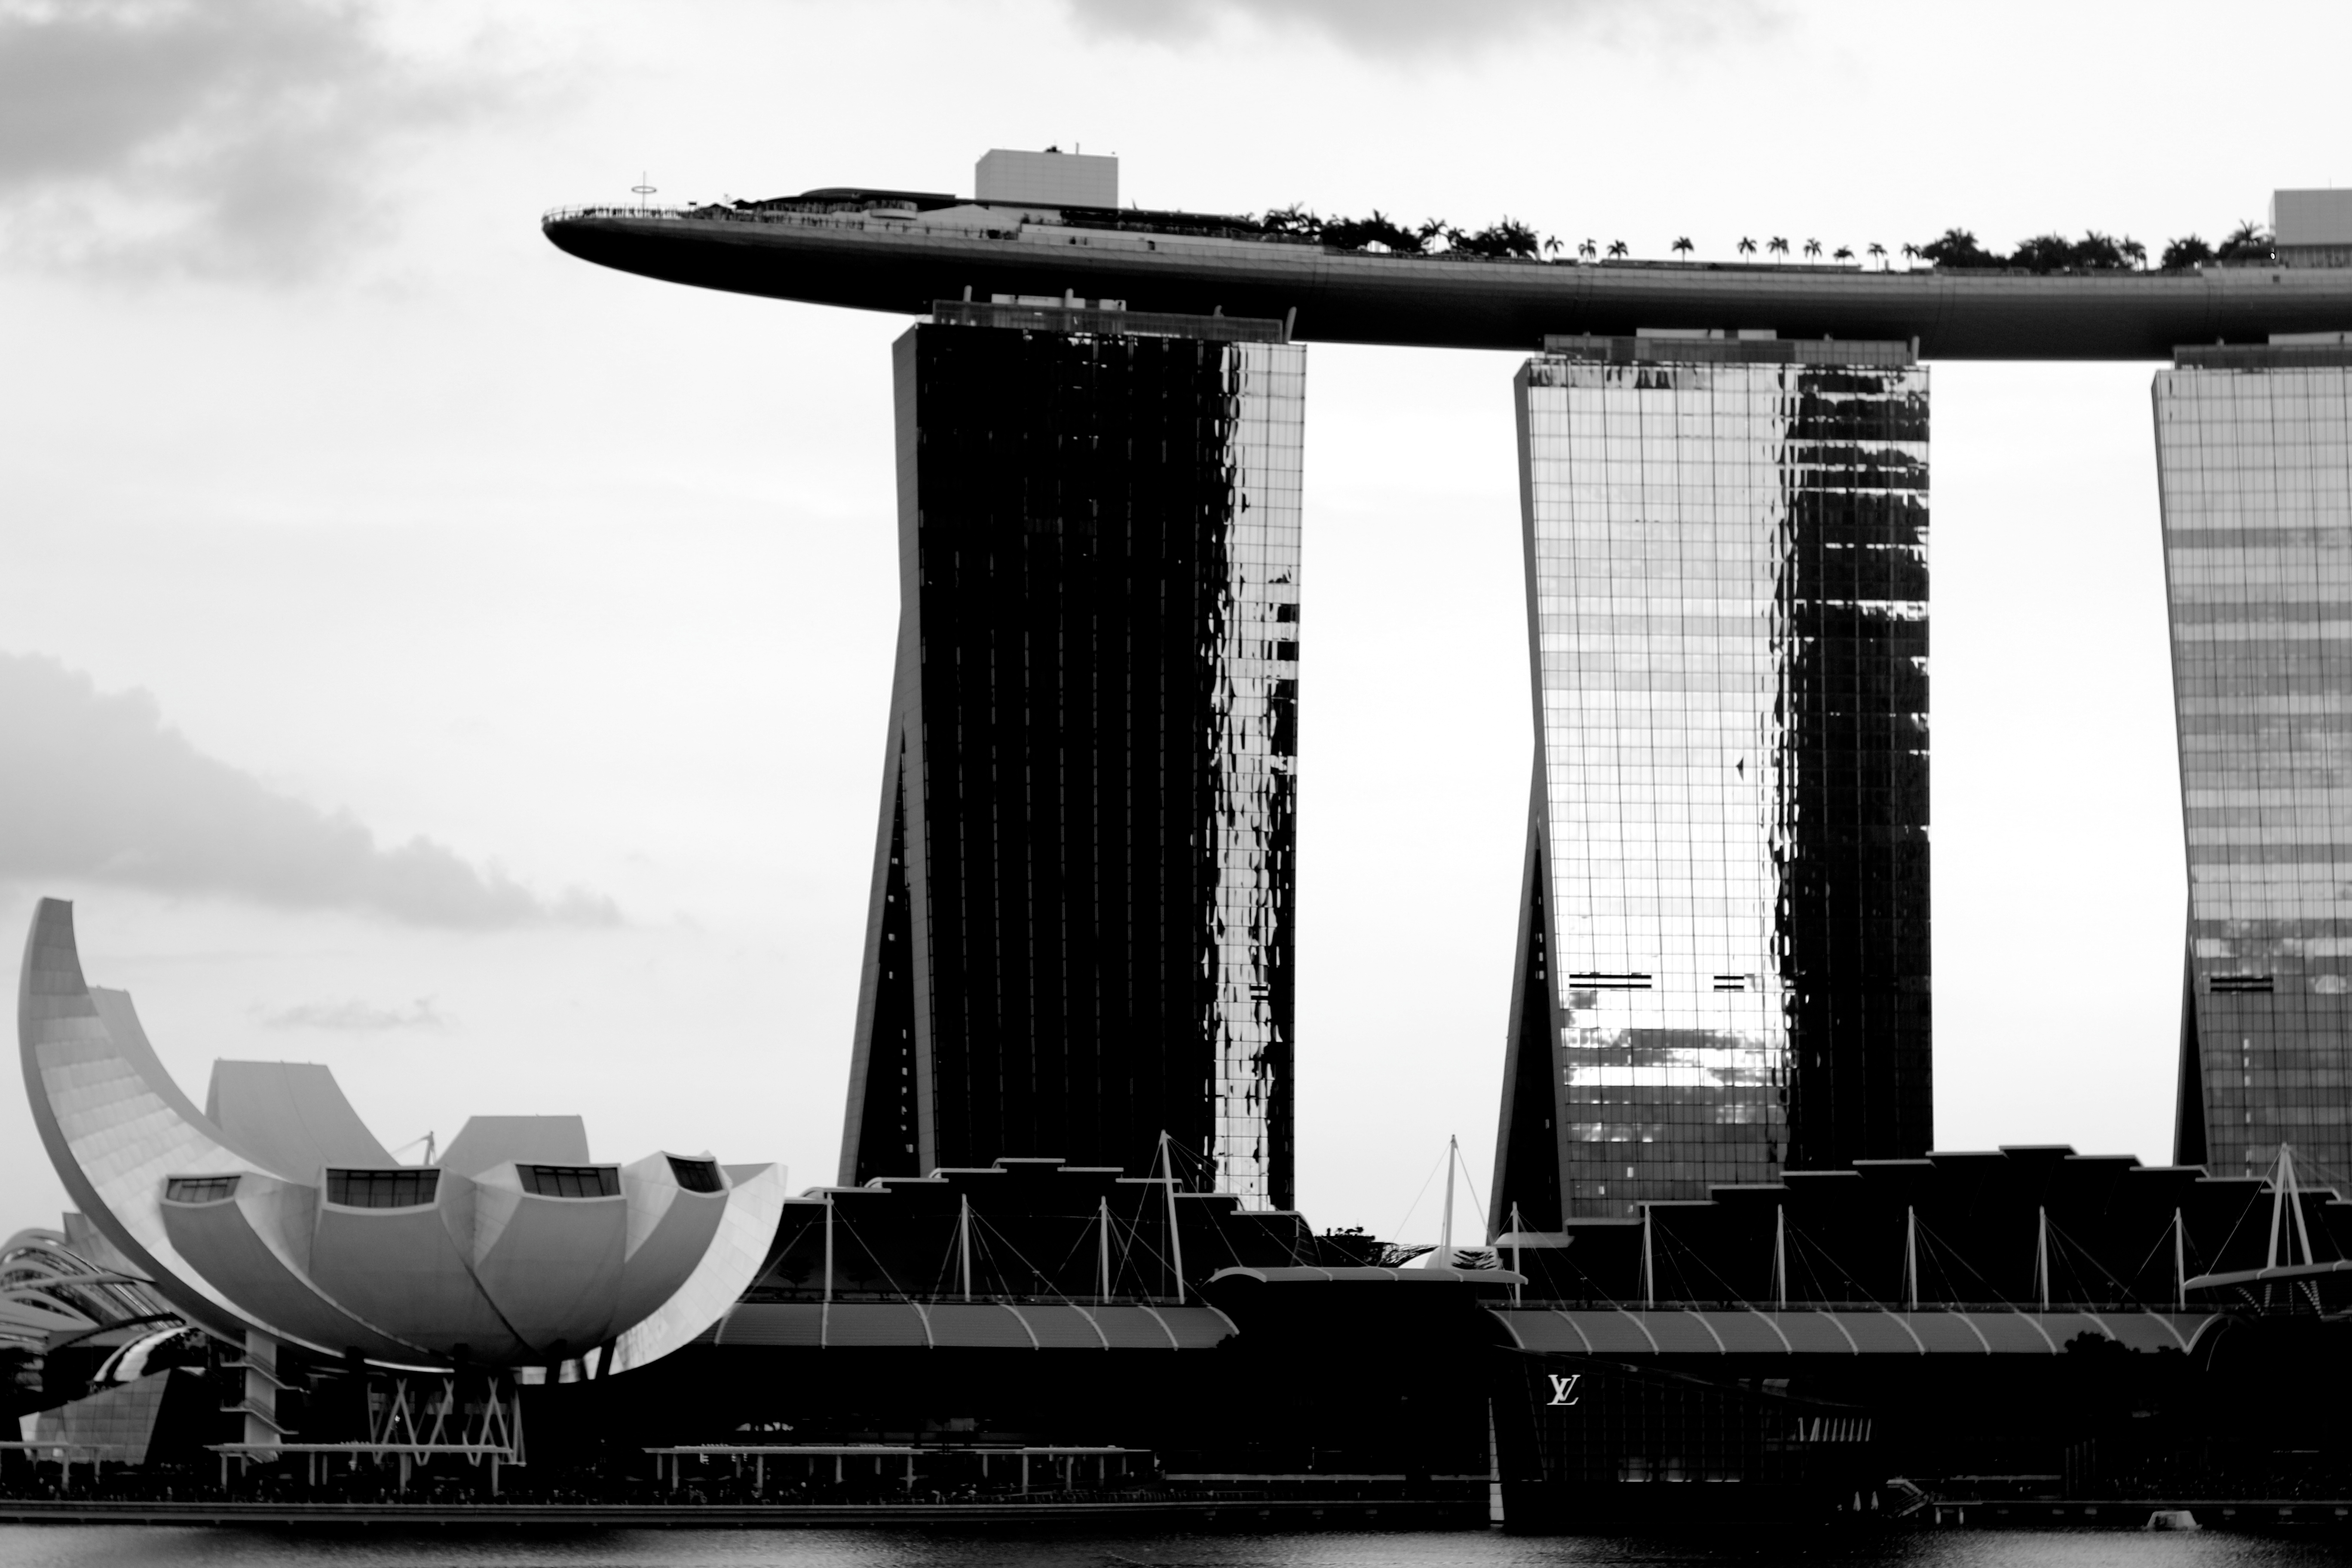 Img 0937 for Marina bay sands architecture concept